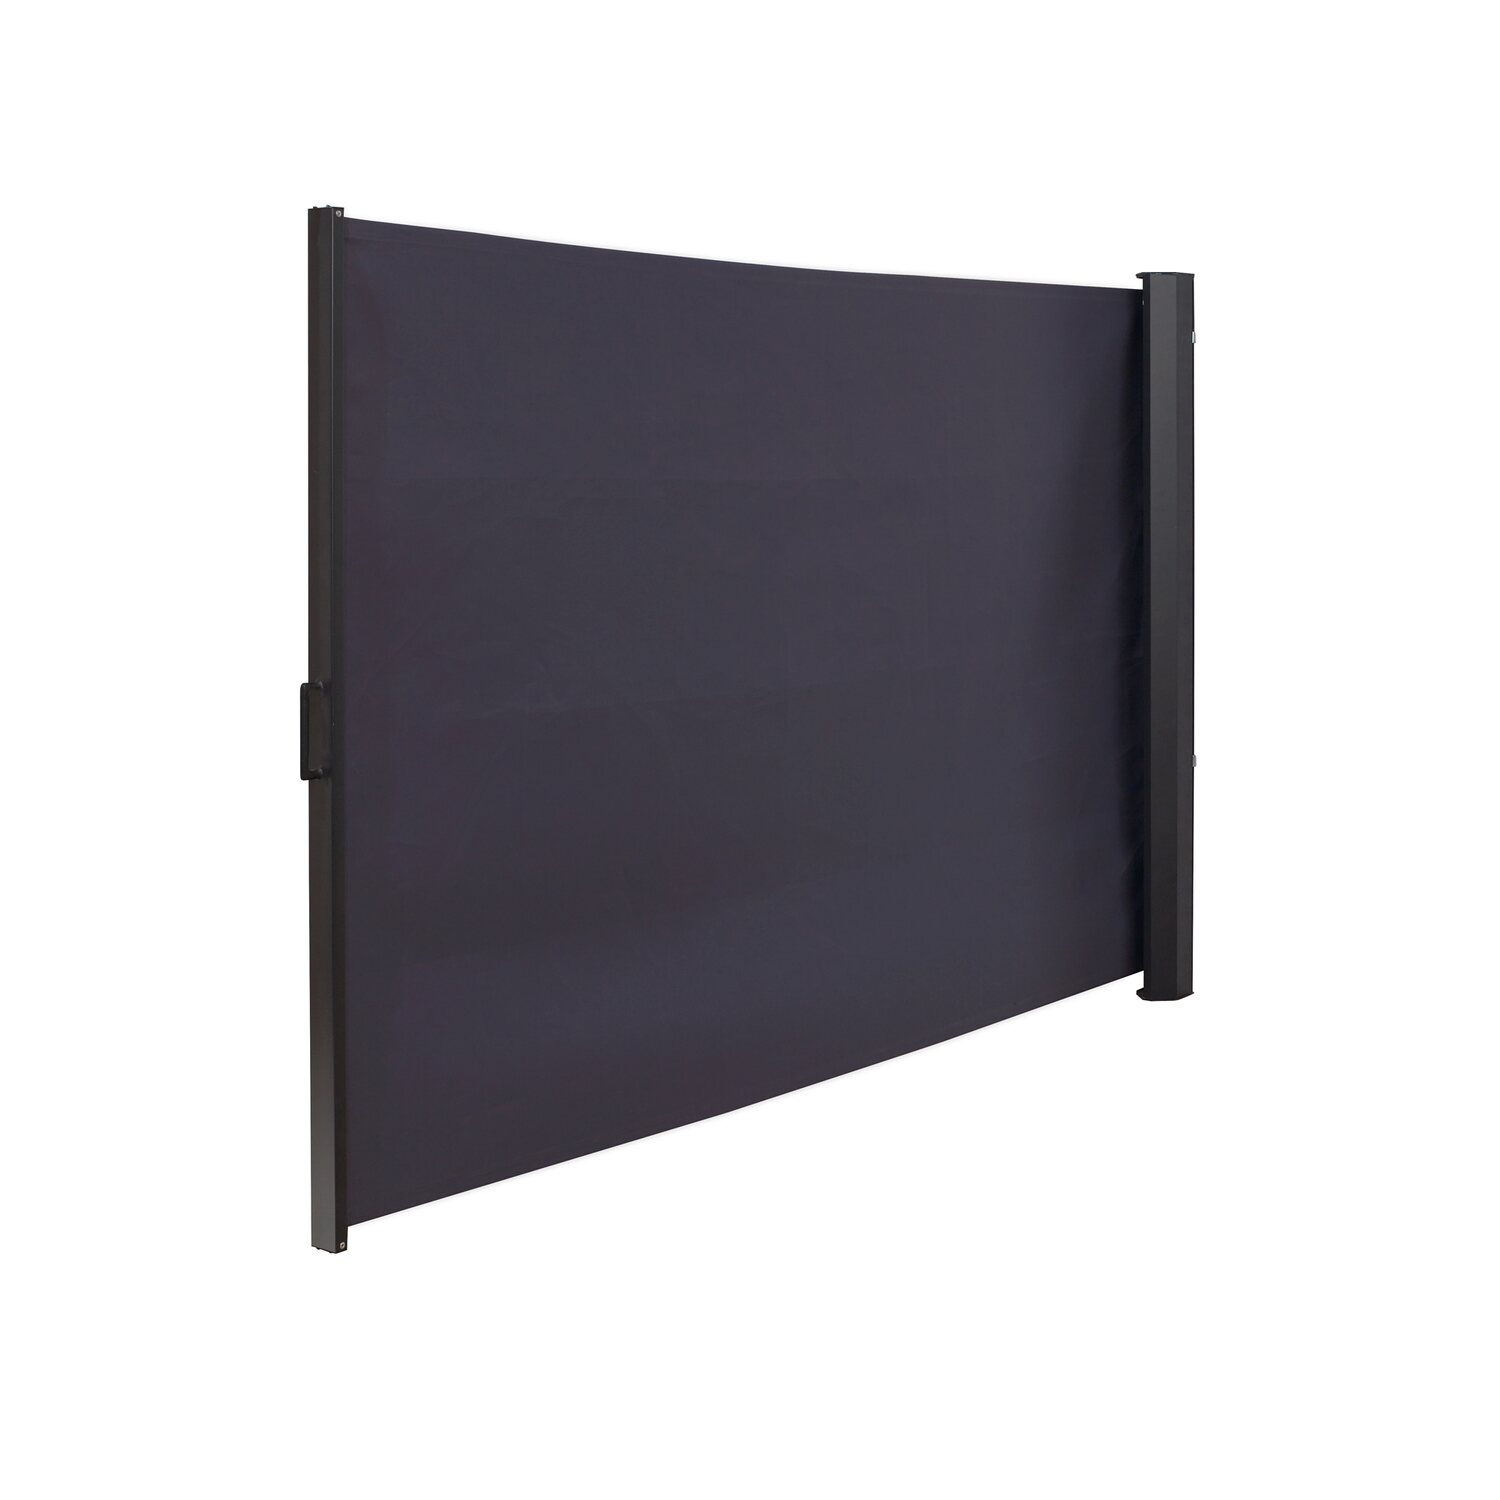 Obi Vertikalmarkise Livingston 300 Cm X 150 Cm Anthrazit